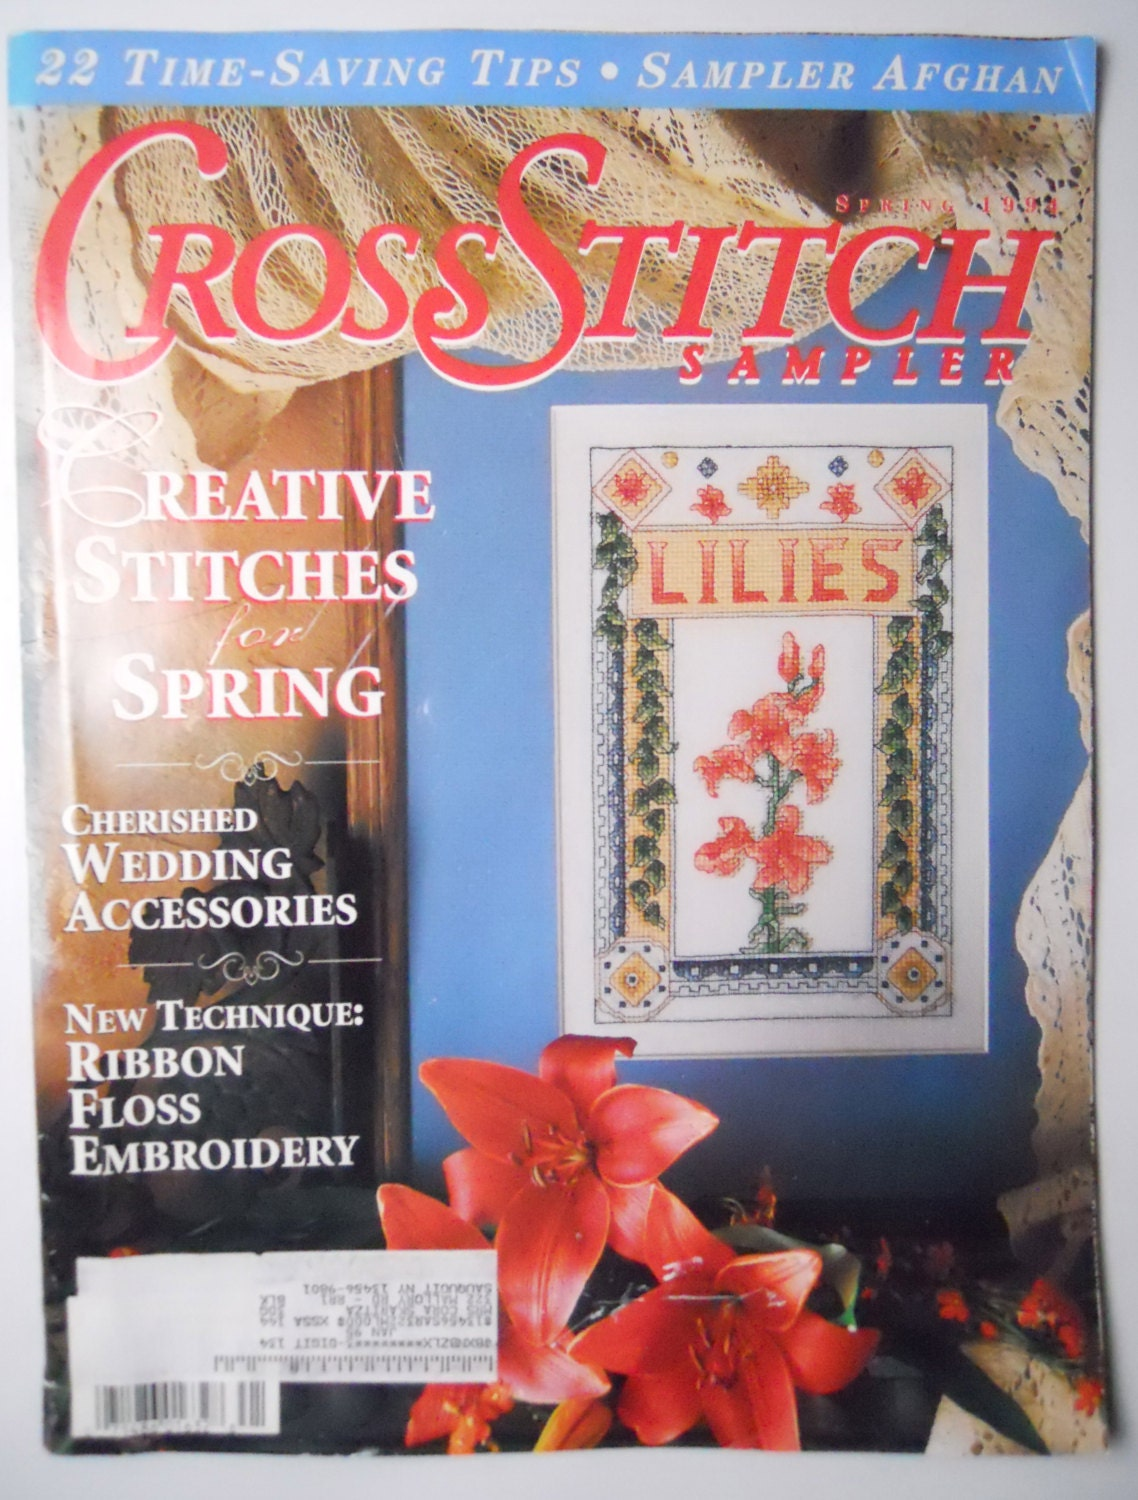 Cross stitch sampler magazine spring patterns wedding for Country living magazine cross stitch